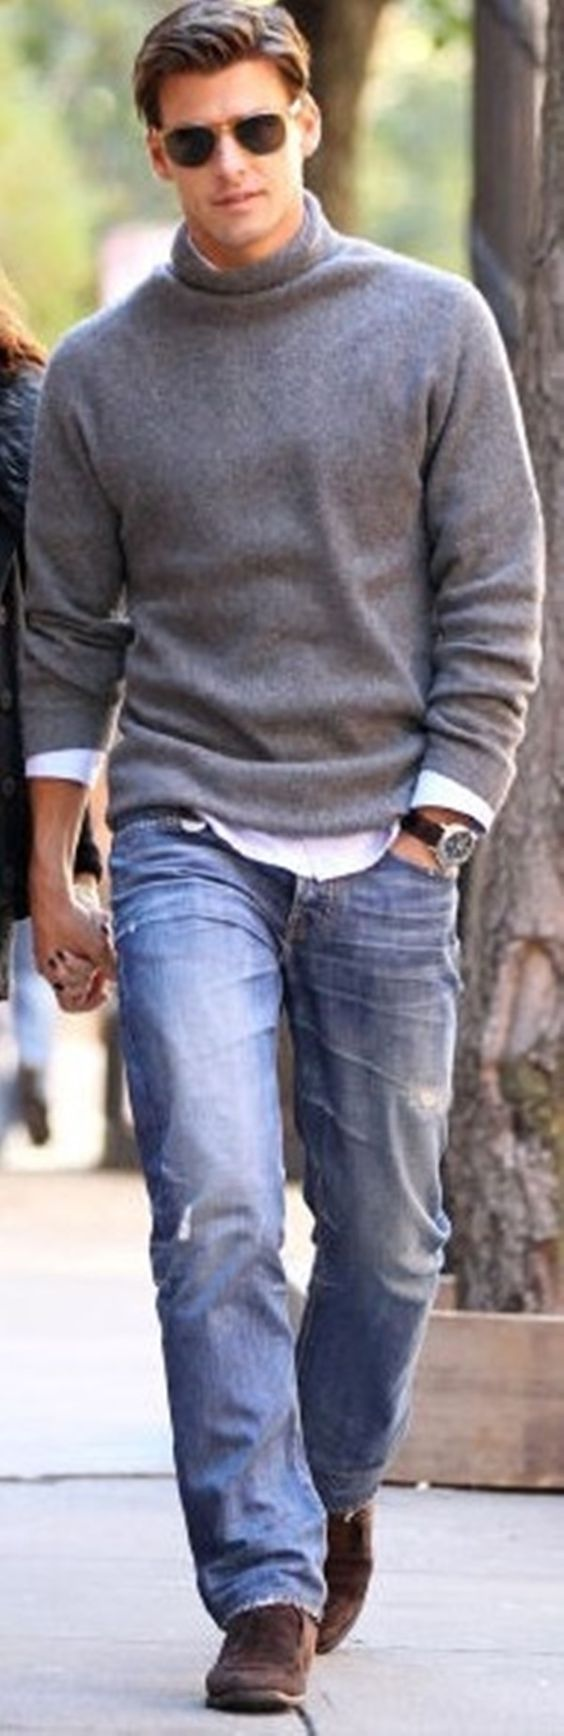 Image for fashion for 50 year old men | All things Men ...